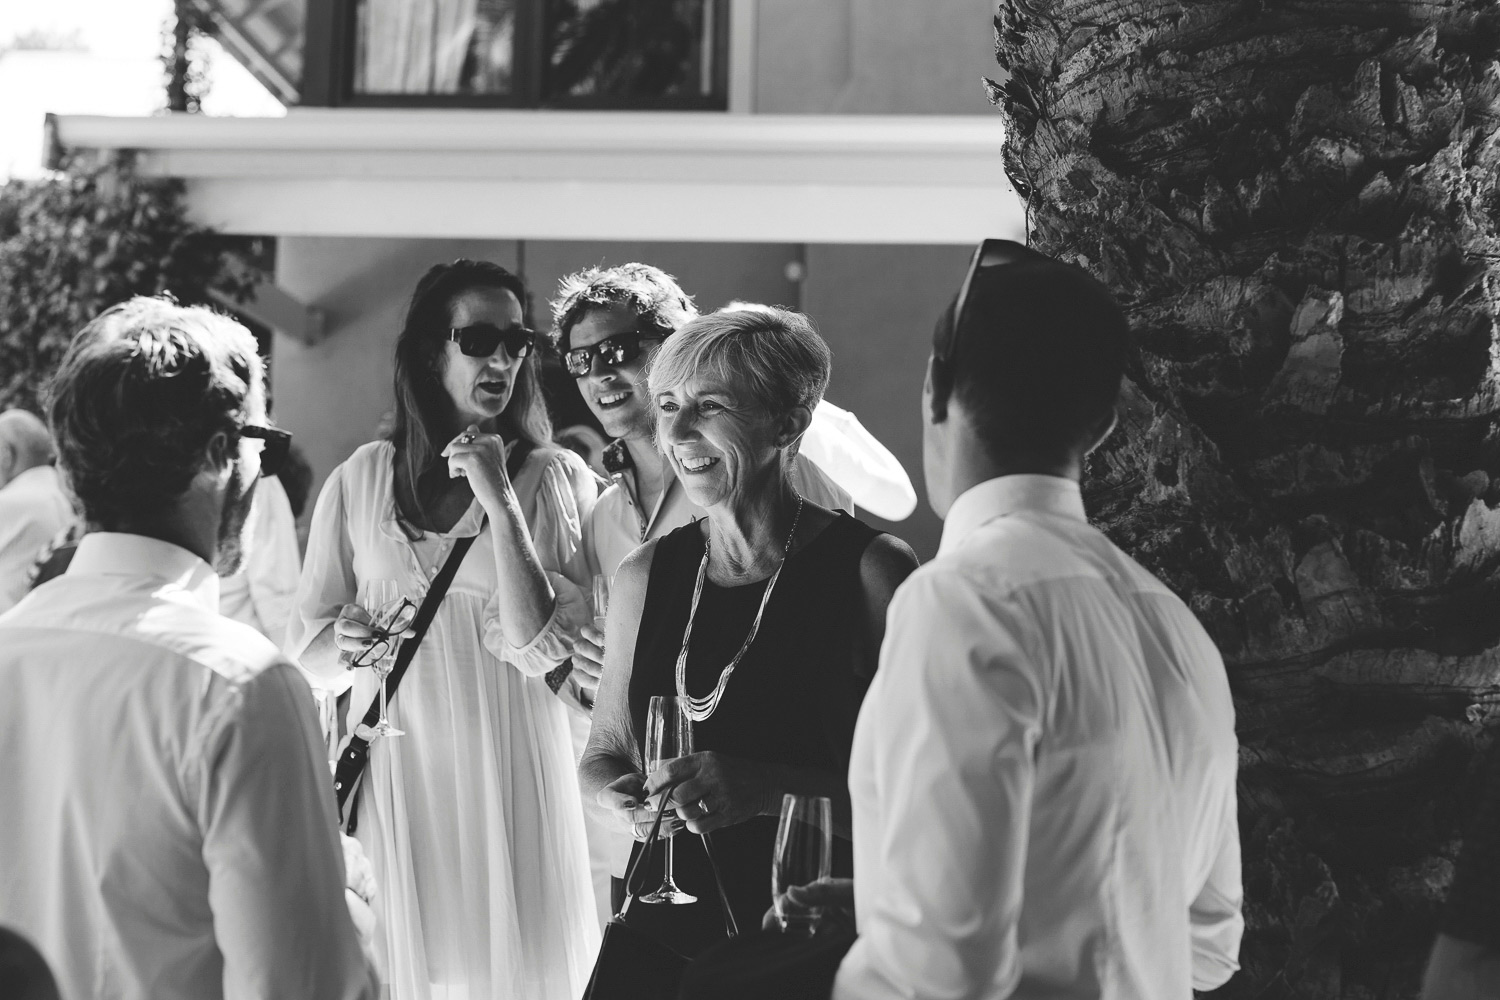 cape-town-wedding-photographer-western-cape-constansia-camilla-charlie-ray30.jpg